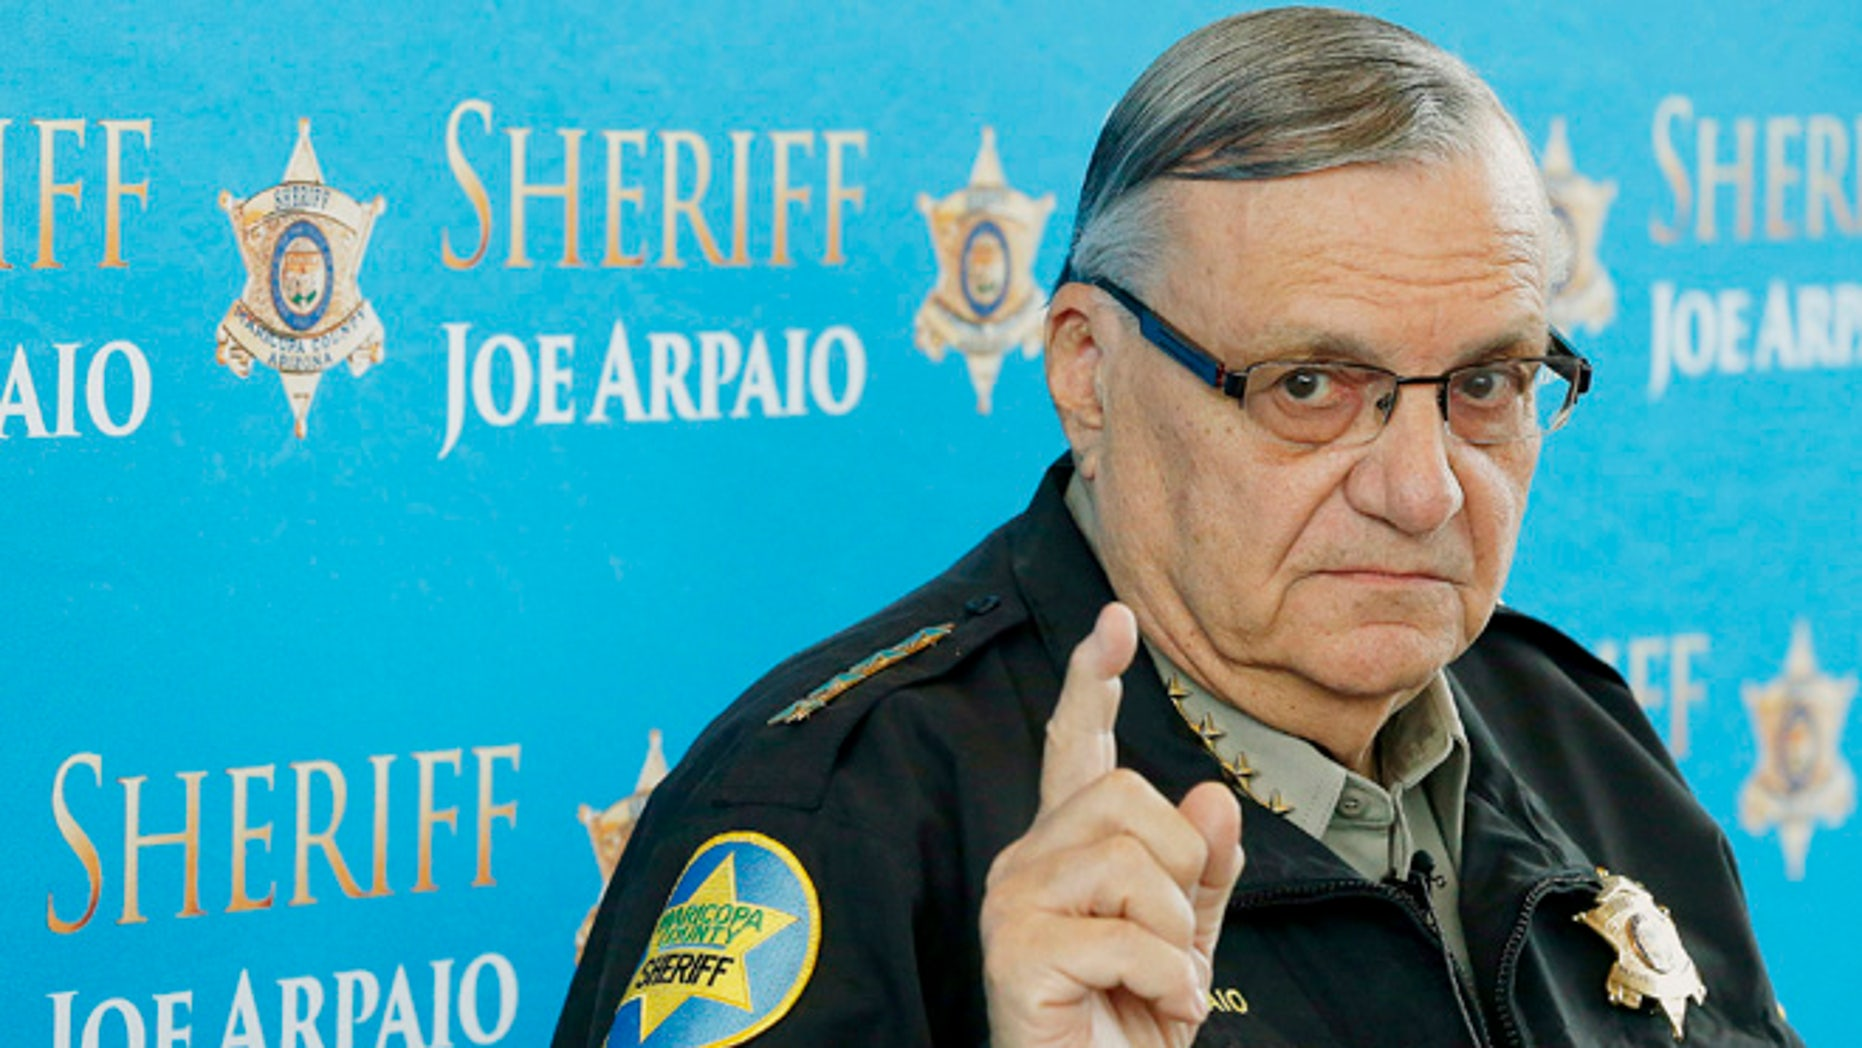 Dec. 18, 2013: Maricopa County Sheriff Joe Arpaio speaks at a news conference at the Sheriff's headquarters in Phoenix, Ariz.